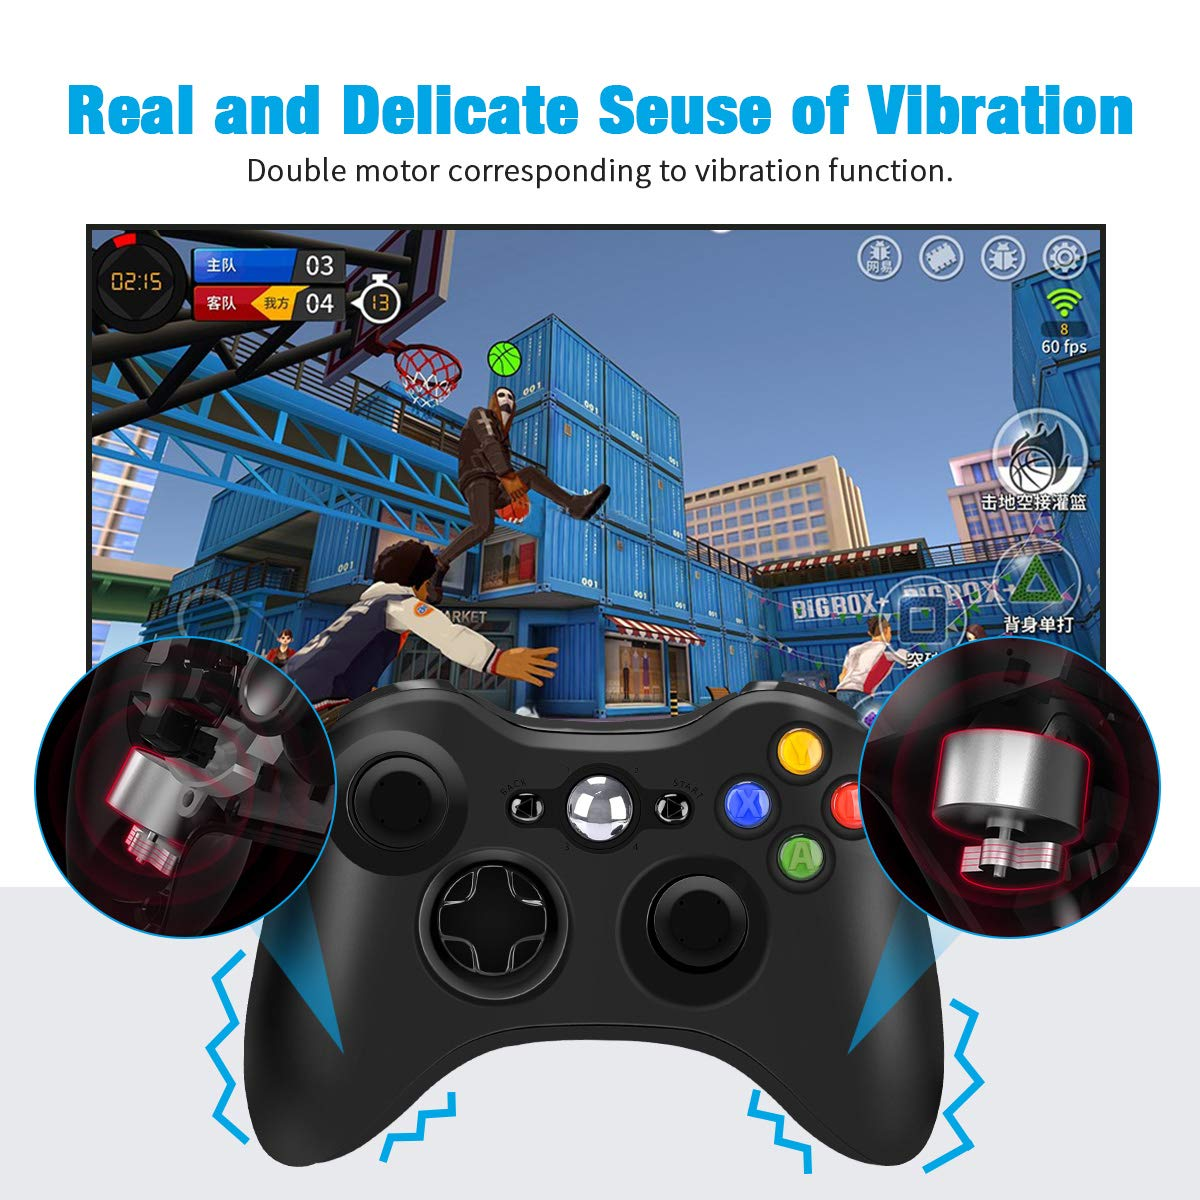 Wireless Controller for Xbox 360, 2.4GHZ Joystick Wireless Game Controller for Microsoft Xbox 360 Slim Console and PC Windows 7,8,10 (Black)